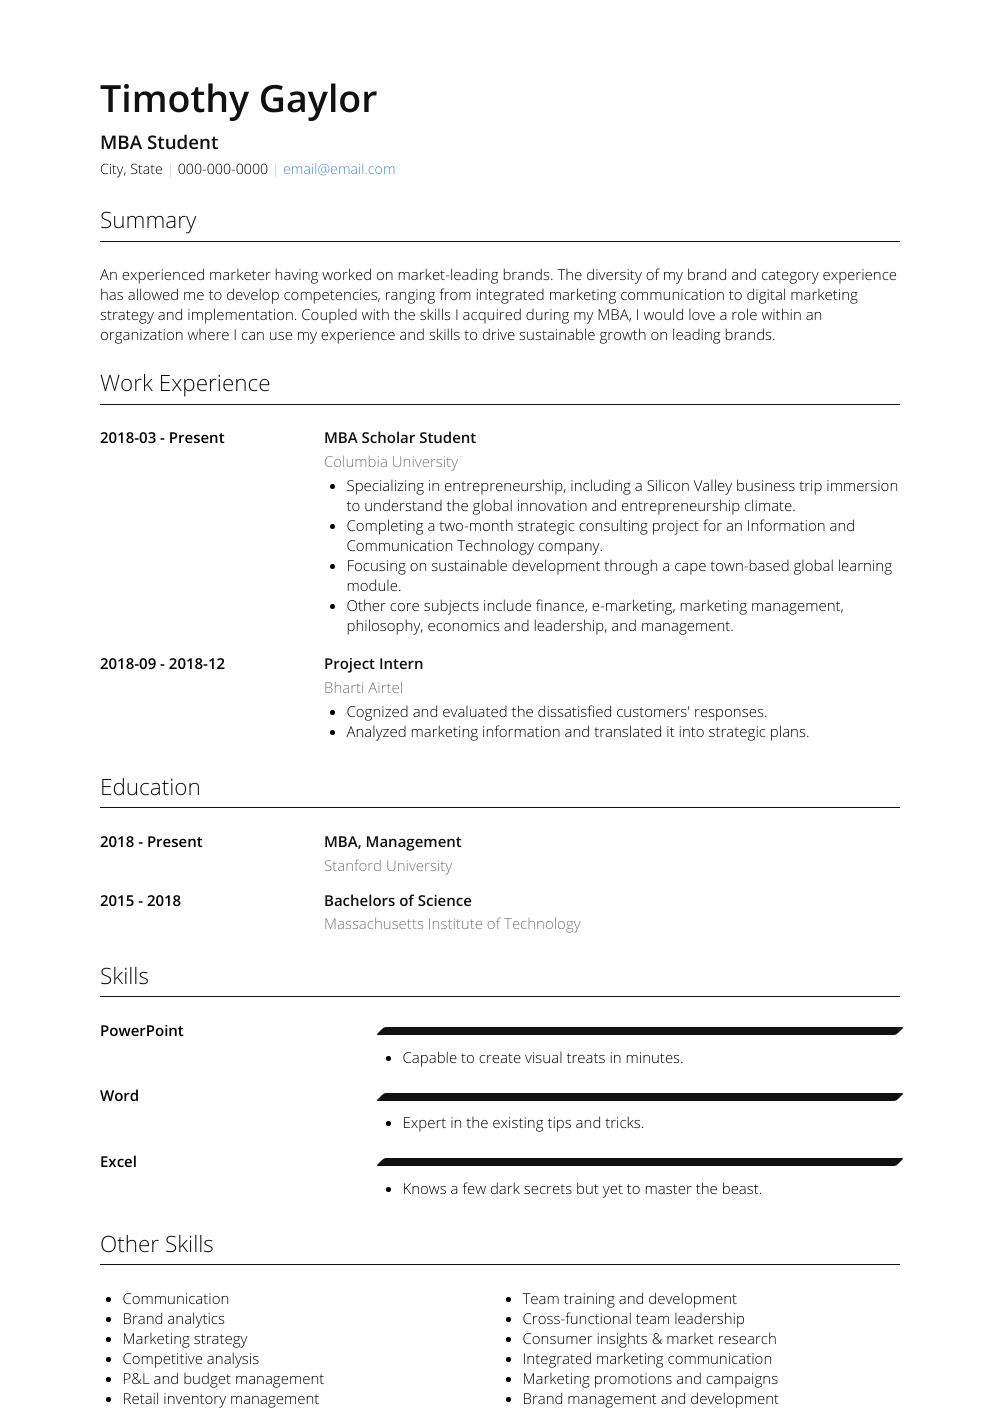 Mba Student Resume Samples & Templates VisualCV